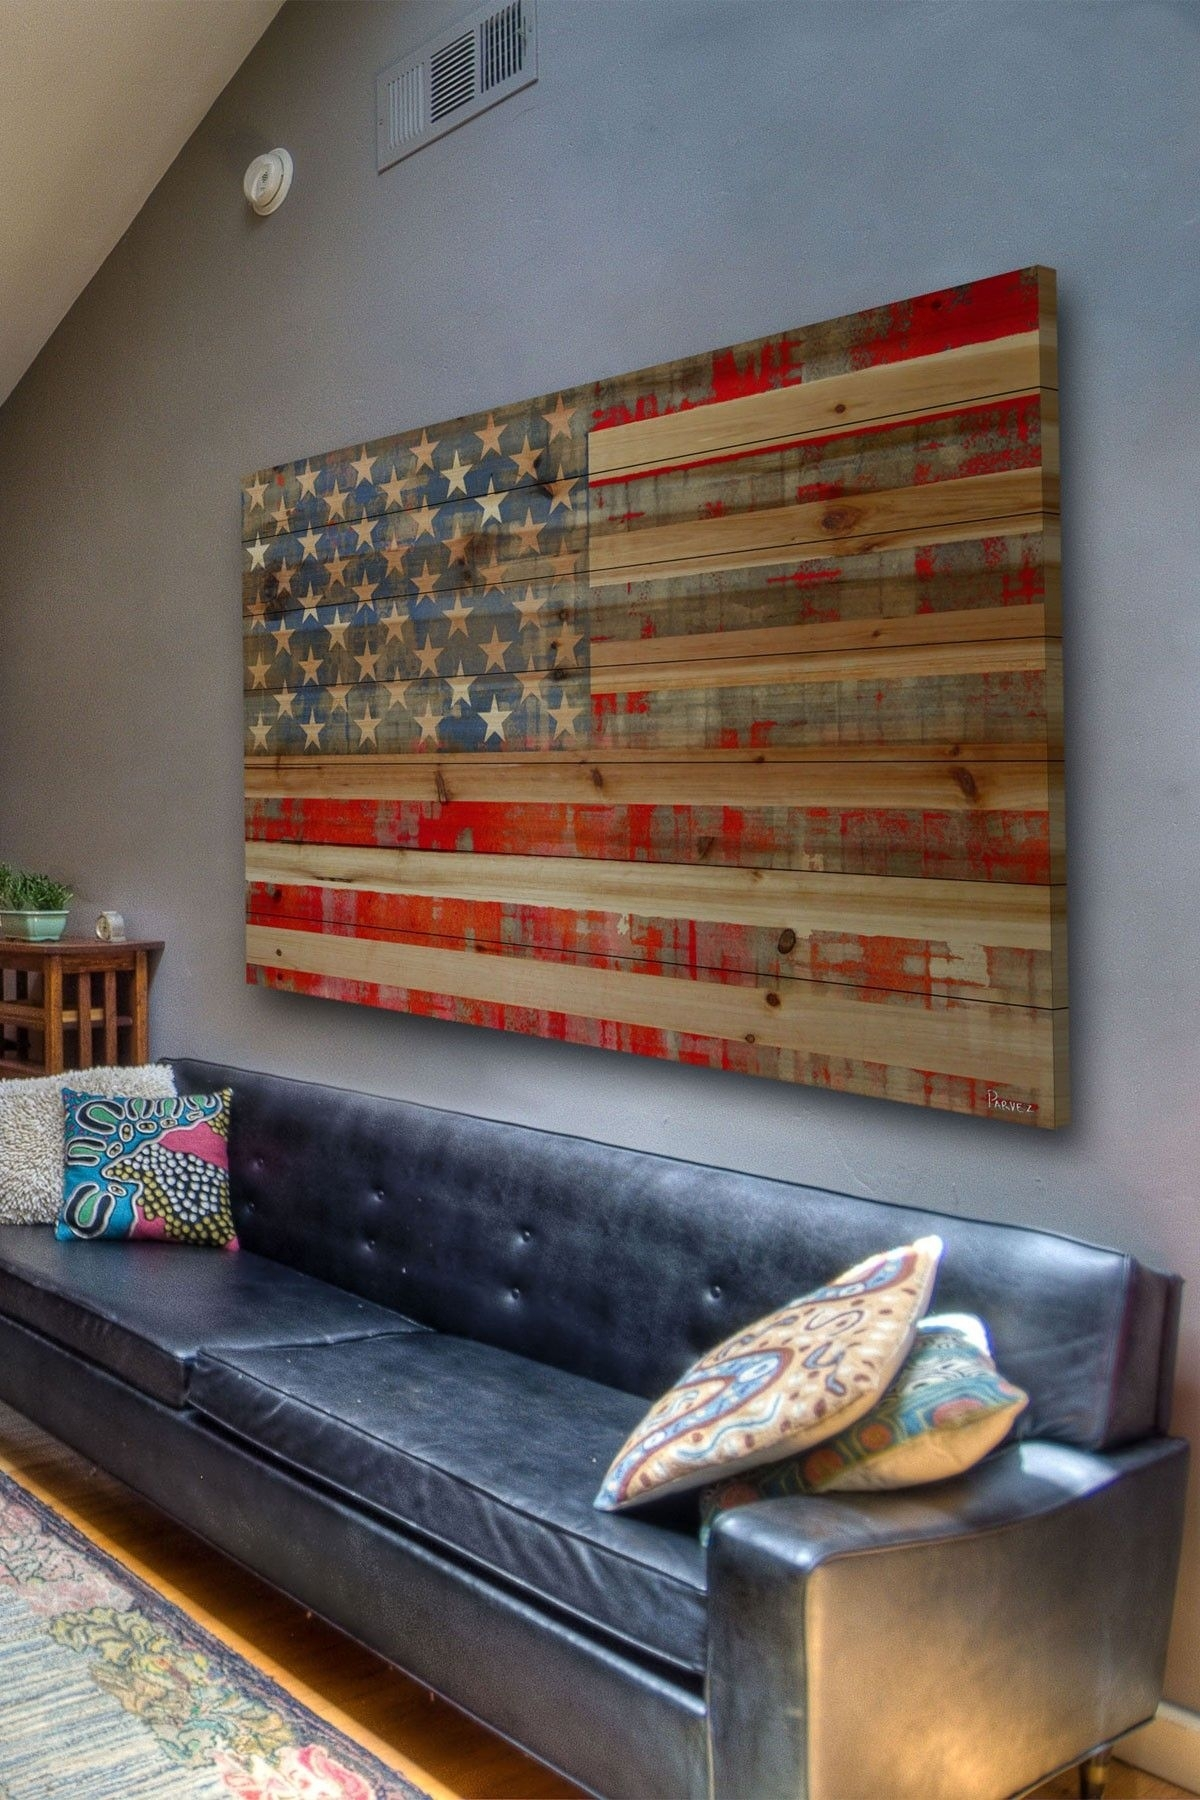 Rustic American Flag Decor Maybe For A Basement Or Lake House Regarding Latest American Flag Wall Art (Gallery 5 of 15)